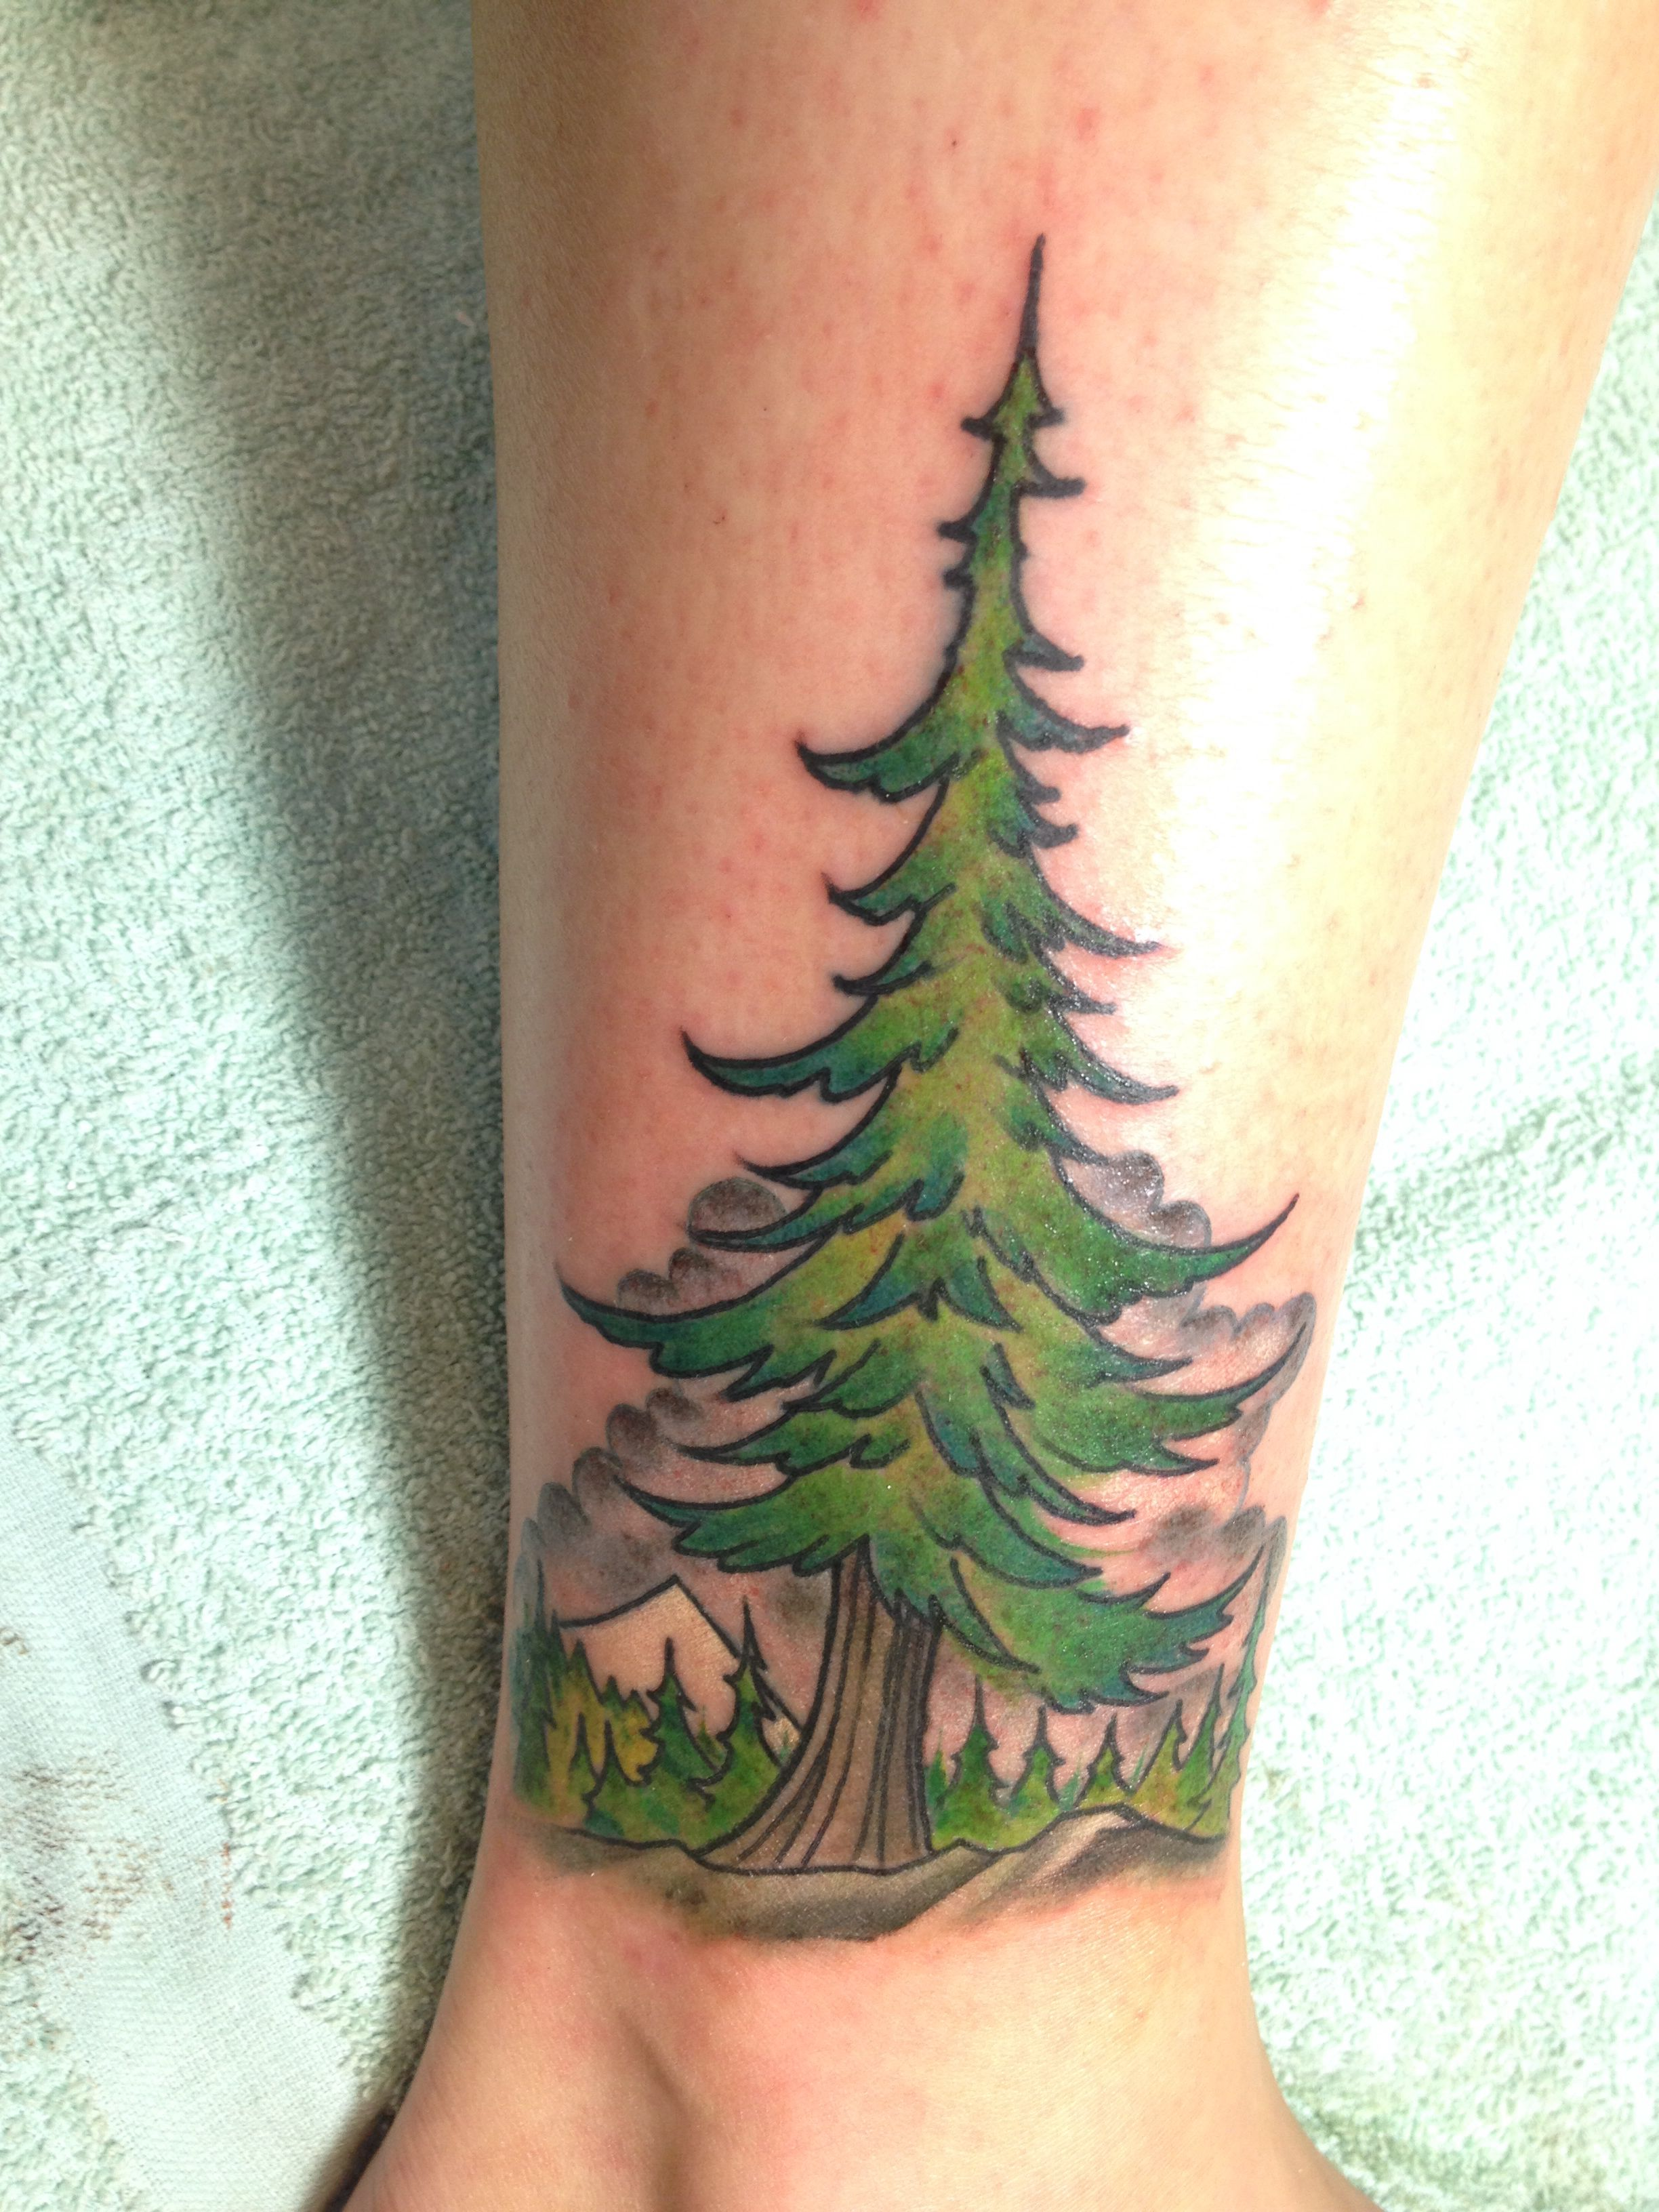 Evergreen Tree Tattoo Love This But Not So Cartoon Like Evergreen Tree Tattoo Tree Tattoo Back Tree Tattoo This is short animation piece that was drawn by hand and then animated using after effects. evergreen tree tattoo love this but